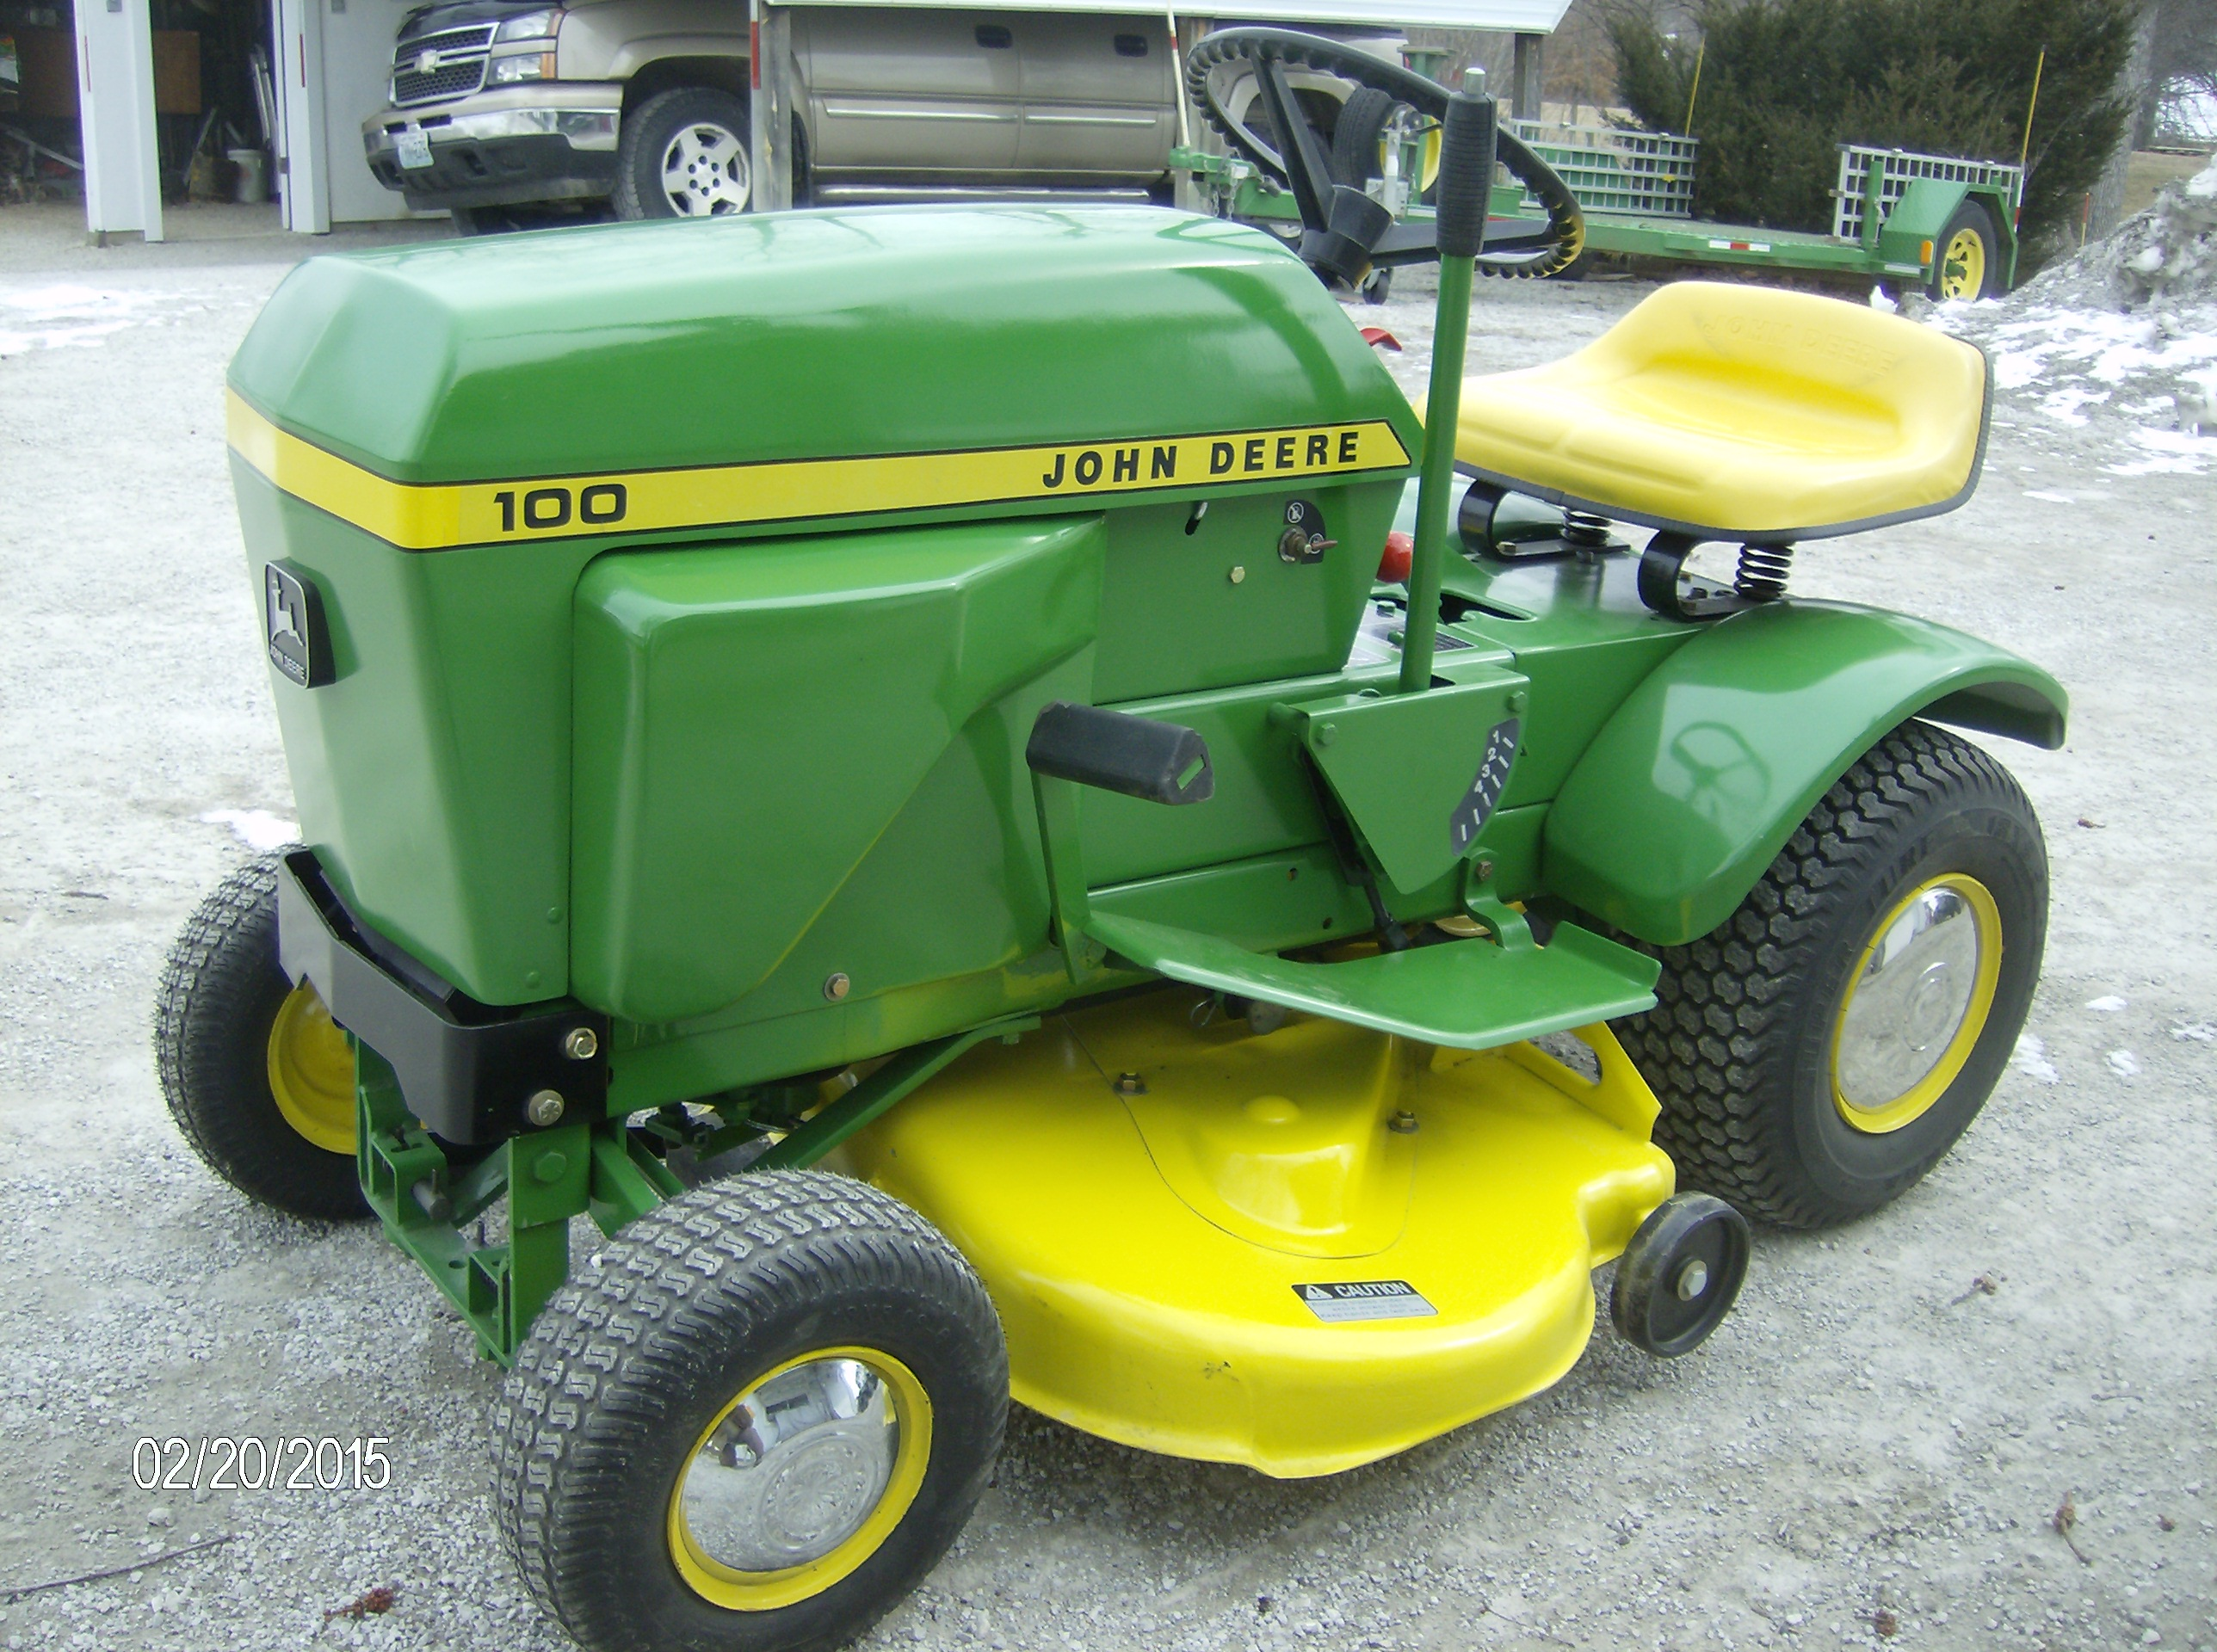 John Deere 100 Lawn Tractor More Tractors Deerex140 Beltsheavesspindles And Blades Exploded Parts Diagram Series Mowers Direct